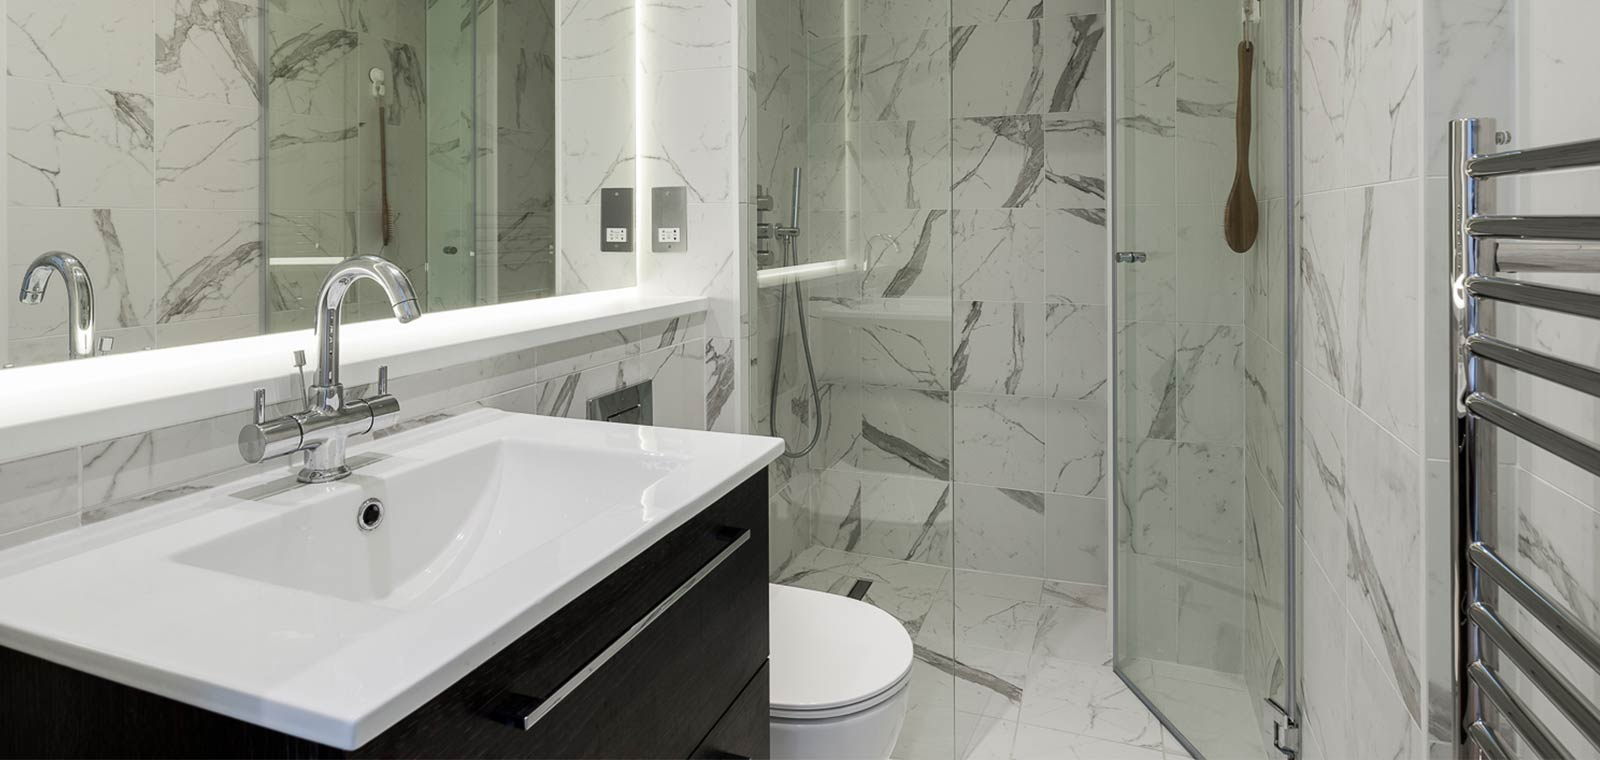 Barons Court basement extension and redesign by Rees Architects - modern bathroom design